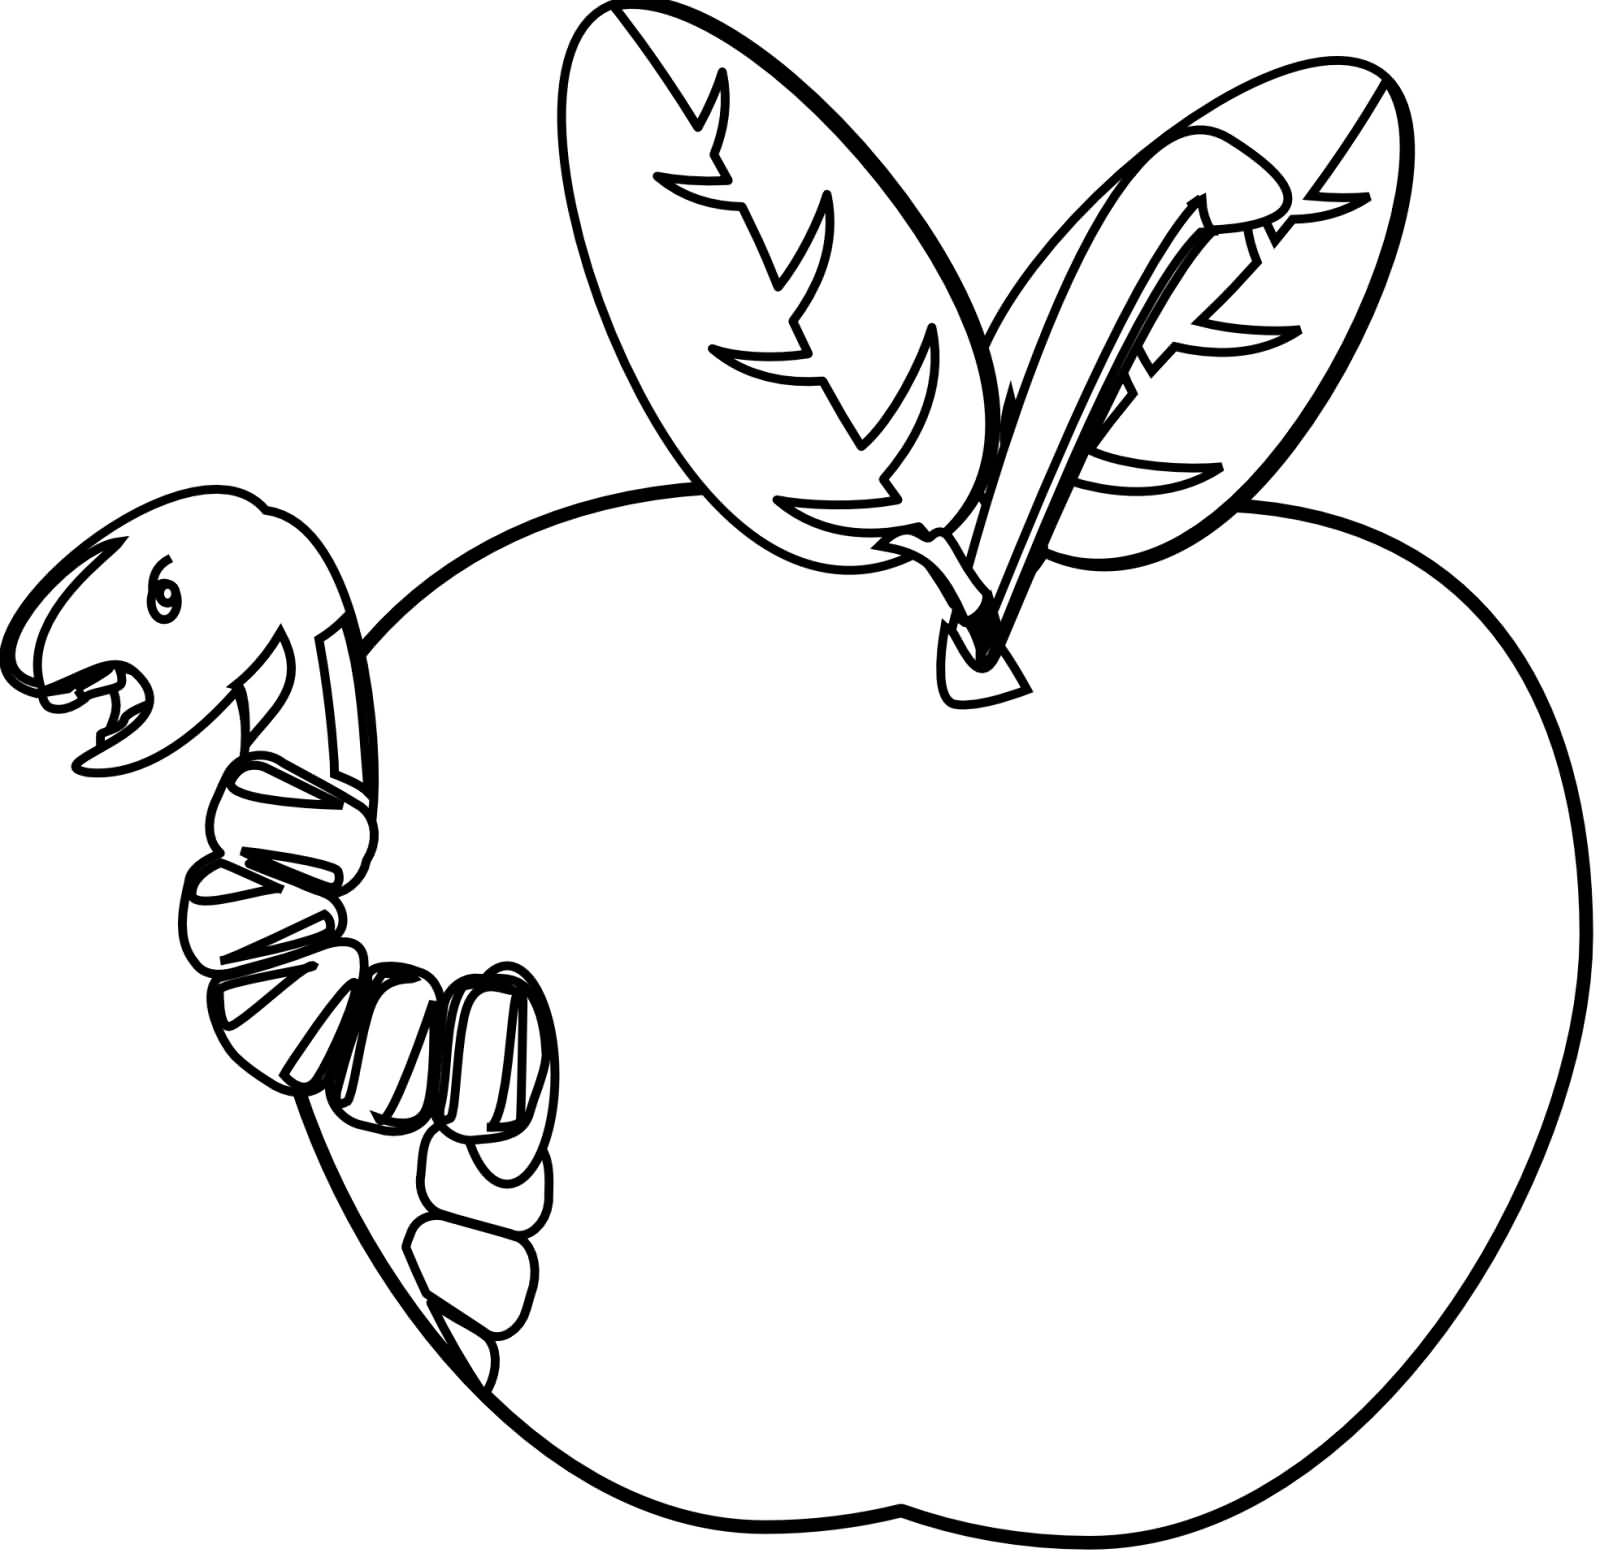 Rotten Apple Clipart | Free download on ClipArtMag (1600 x 1553 Pixel)